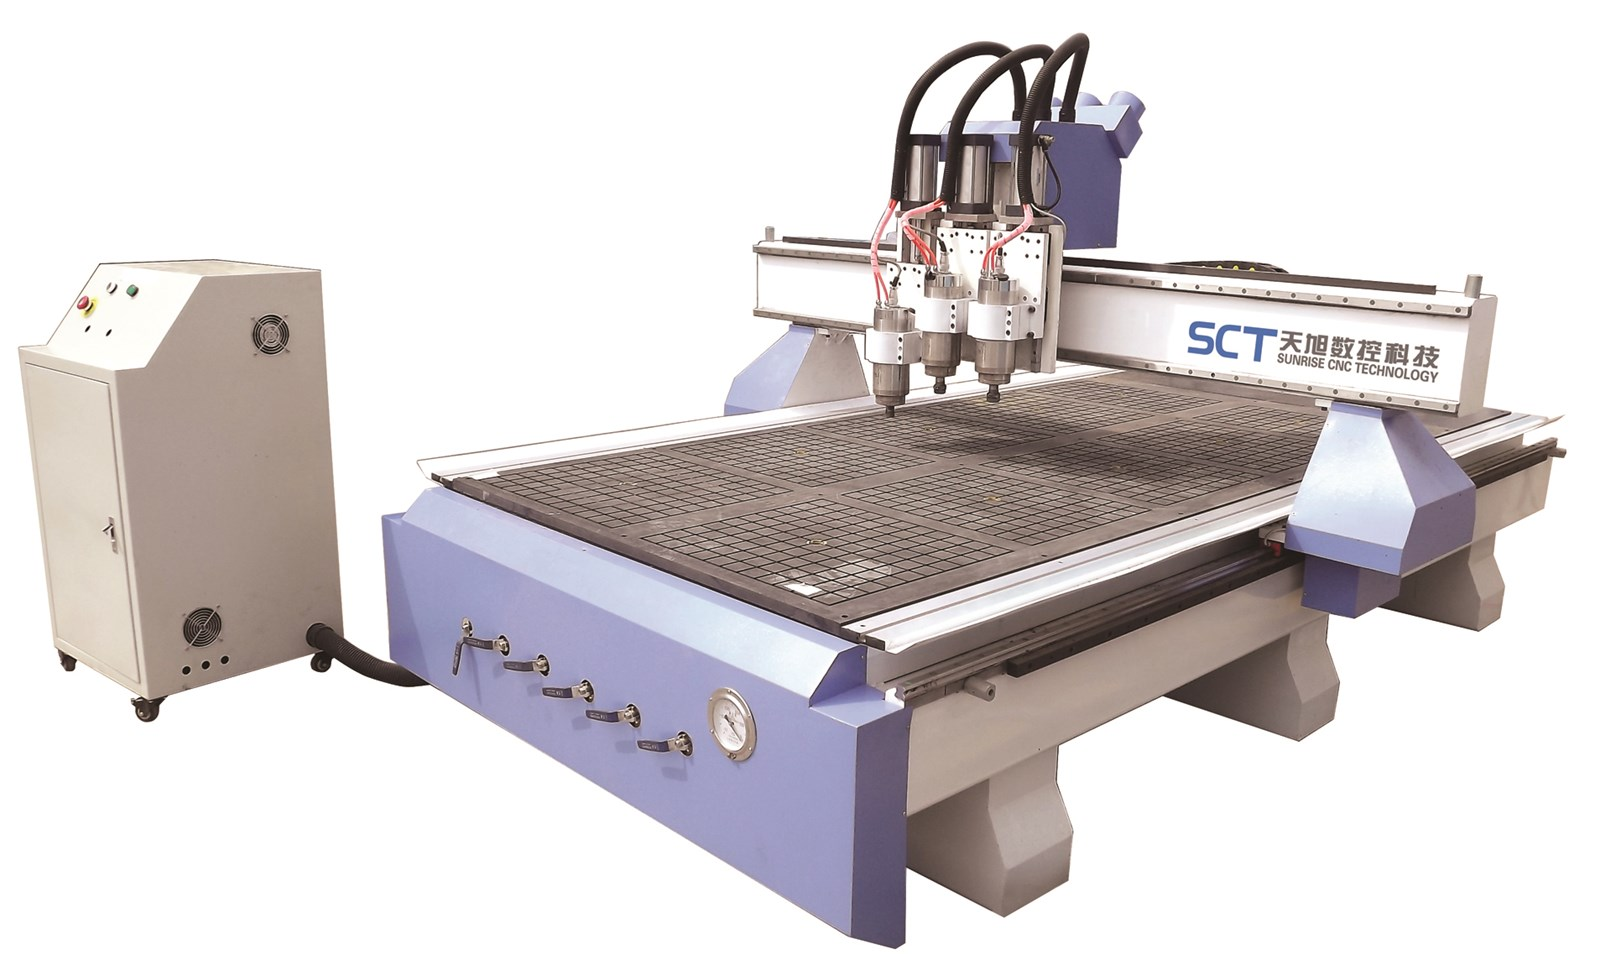 SCTPH1325 Pneumatic Tool Change wood CNC Router